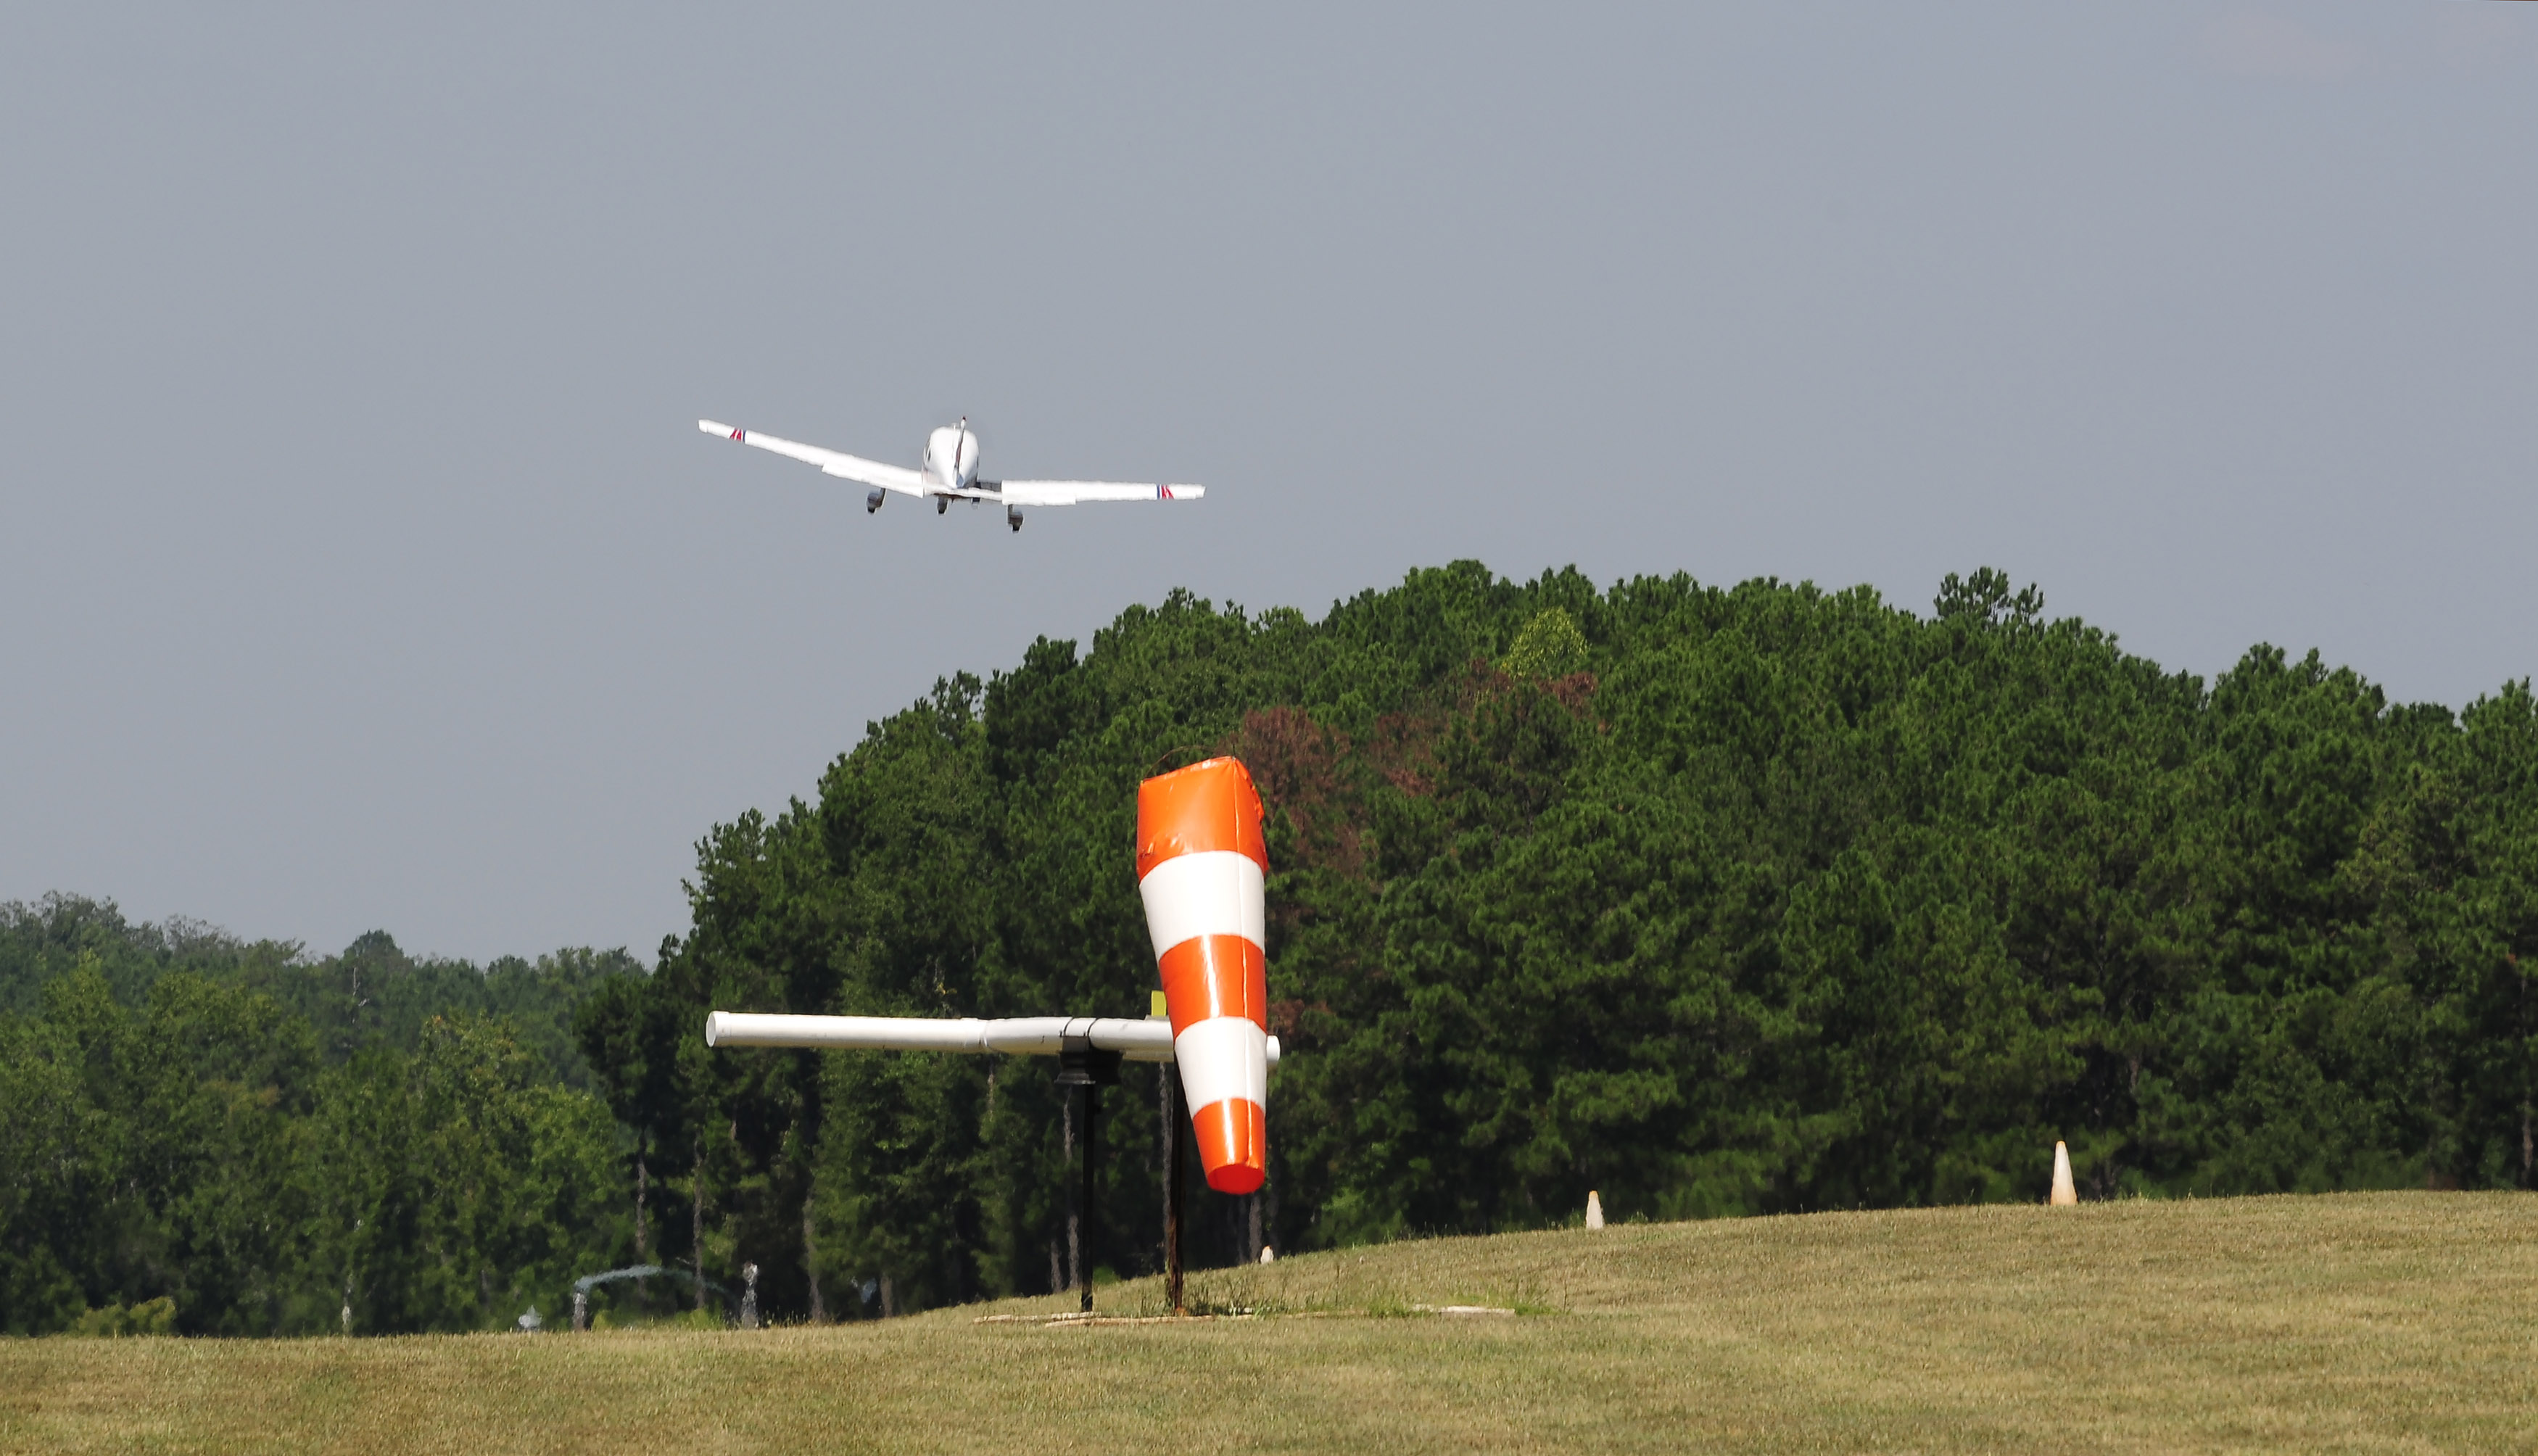 An aircraft takes off from Peach State Aerodrome's grass strip in Williamson, Georgia. Photo by David Tulis.